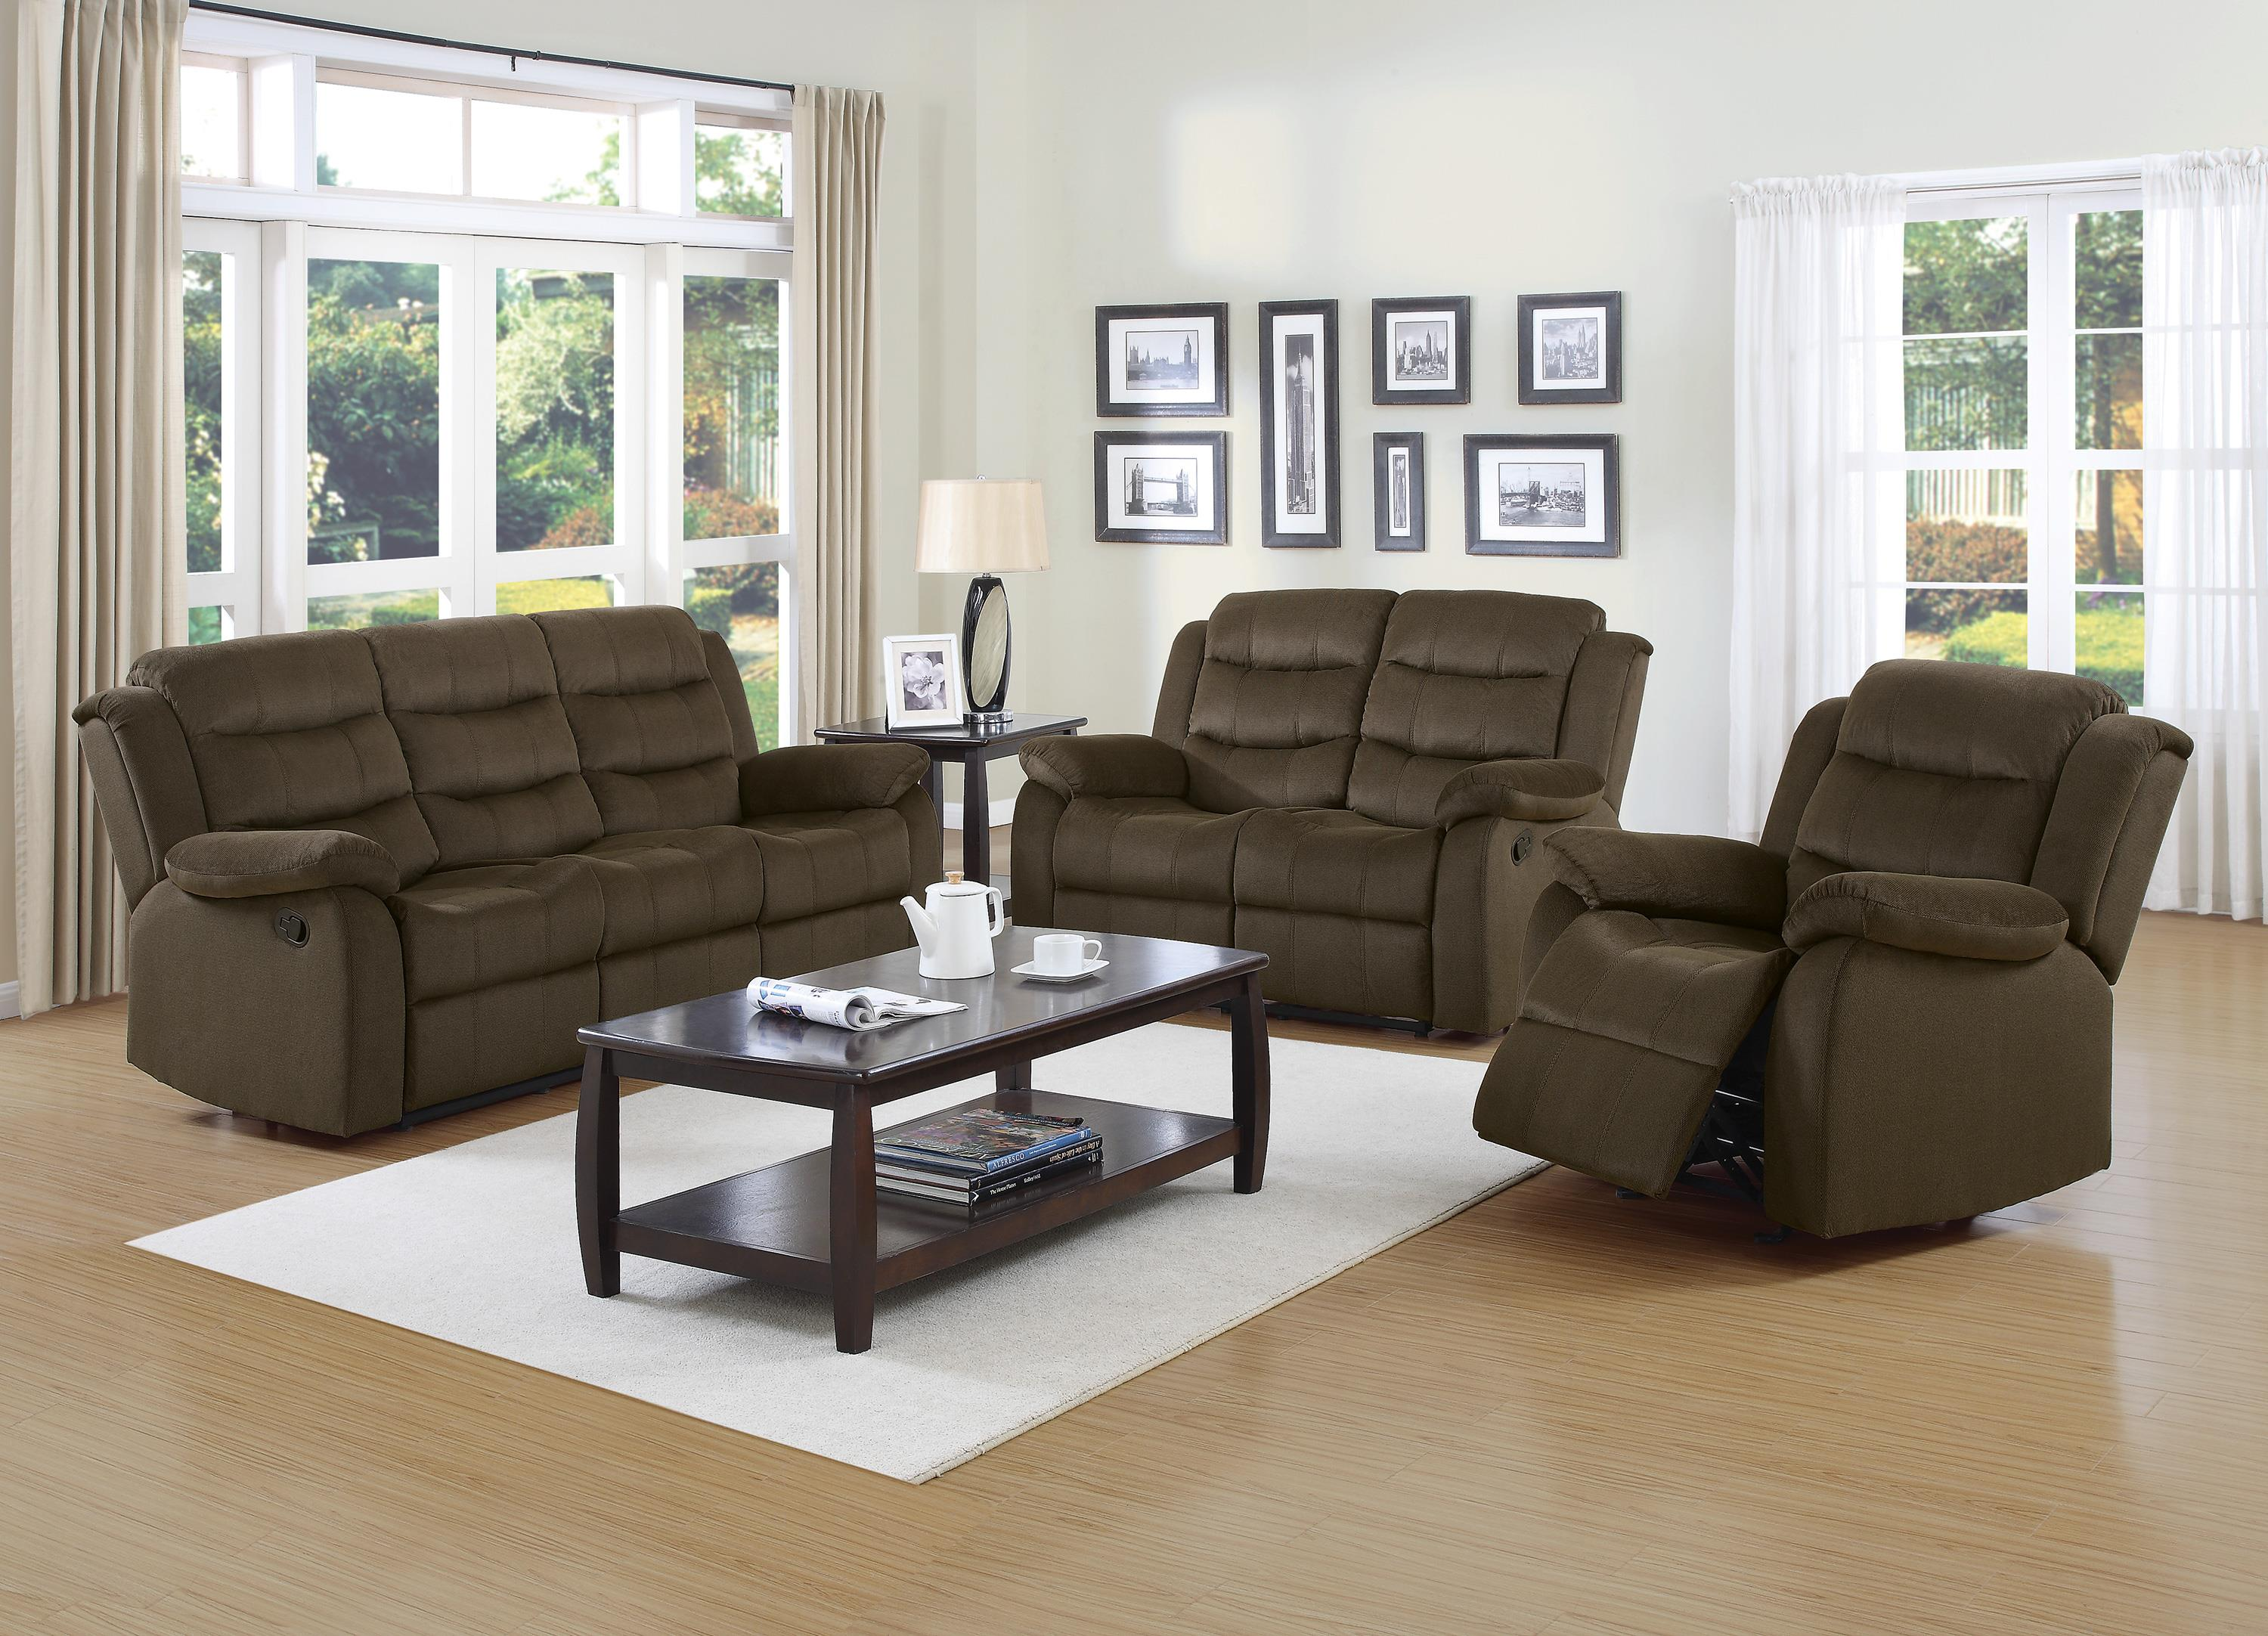 Coaster Rodman Reclining Living Room Group Value City